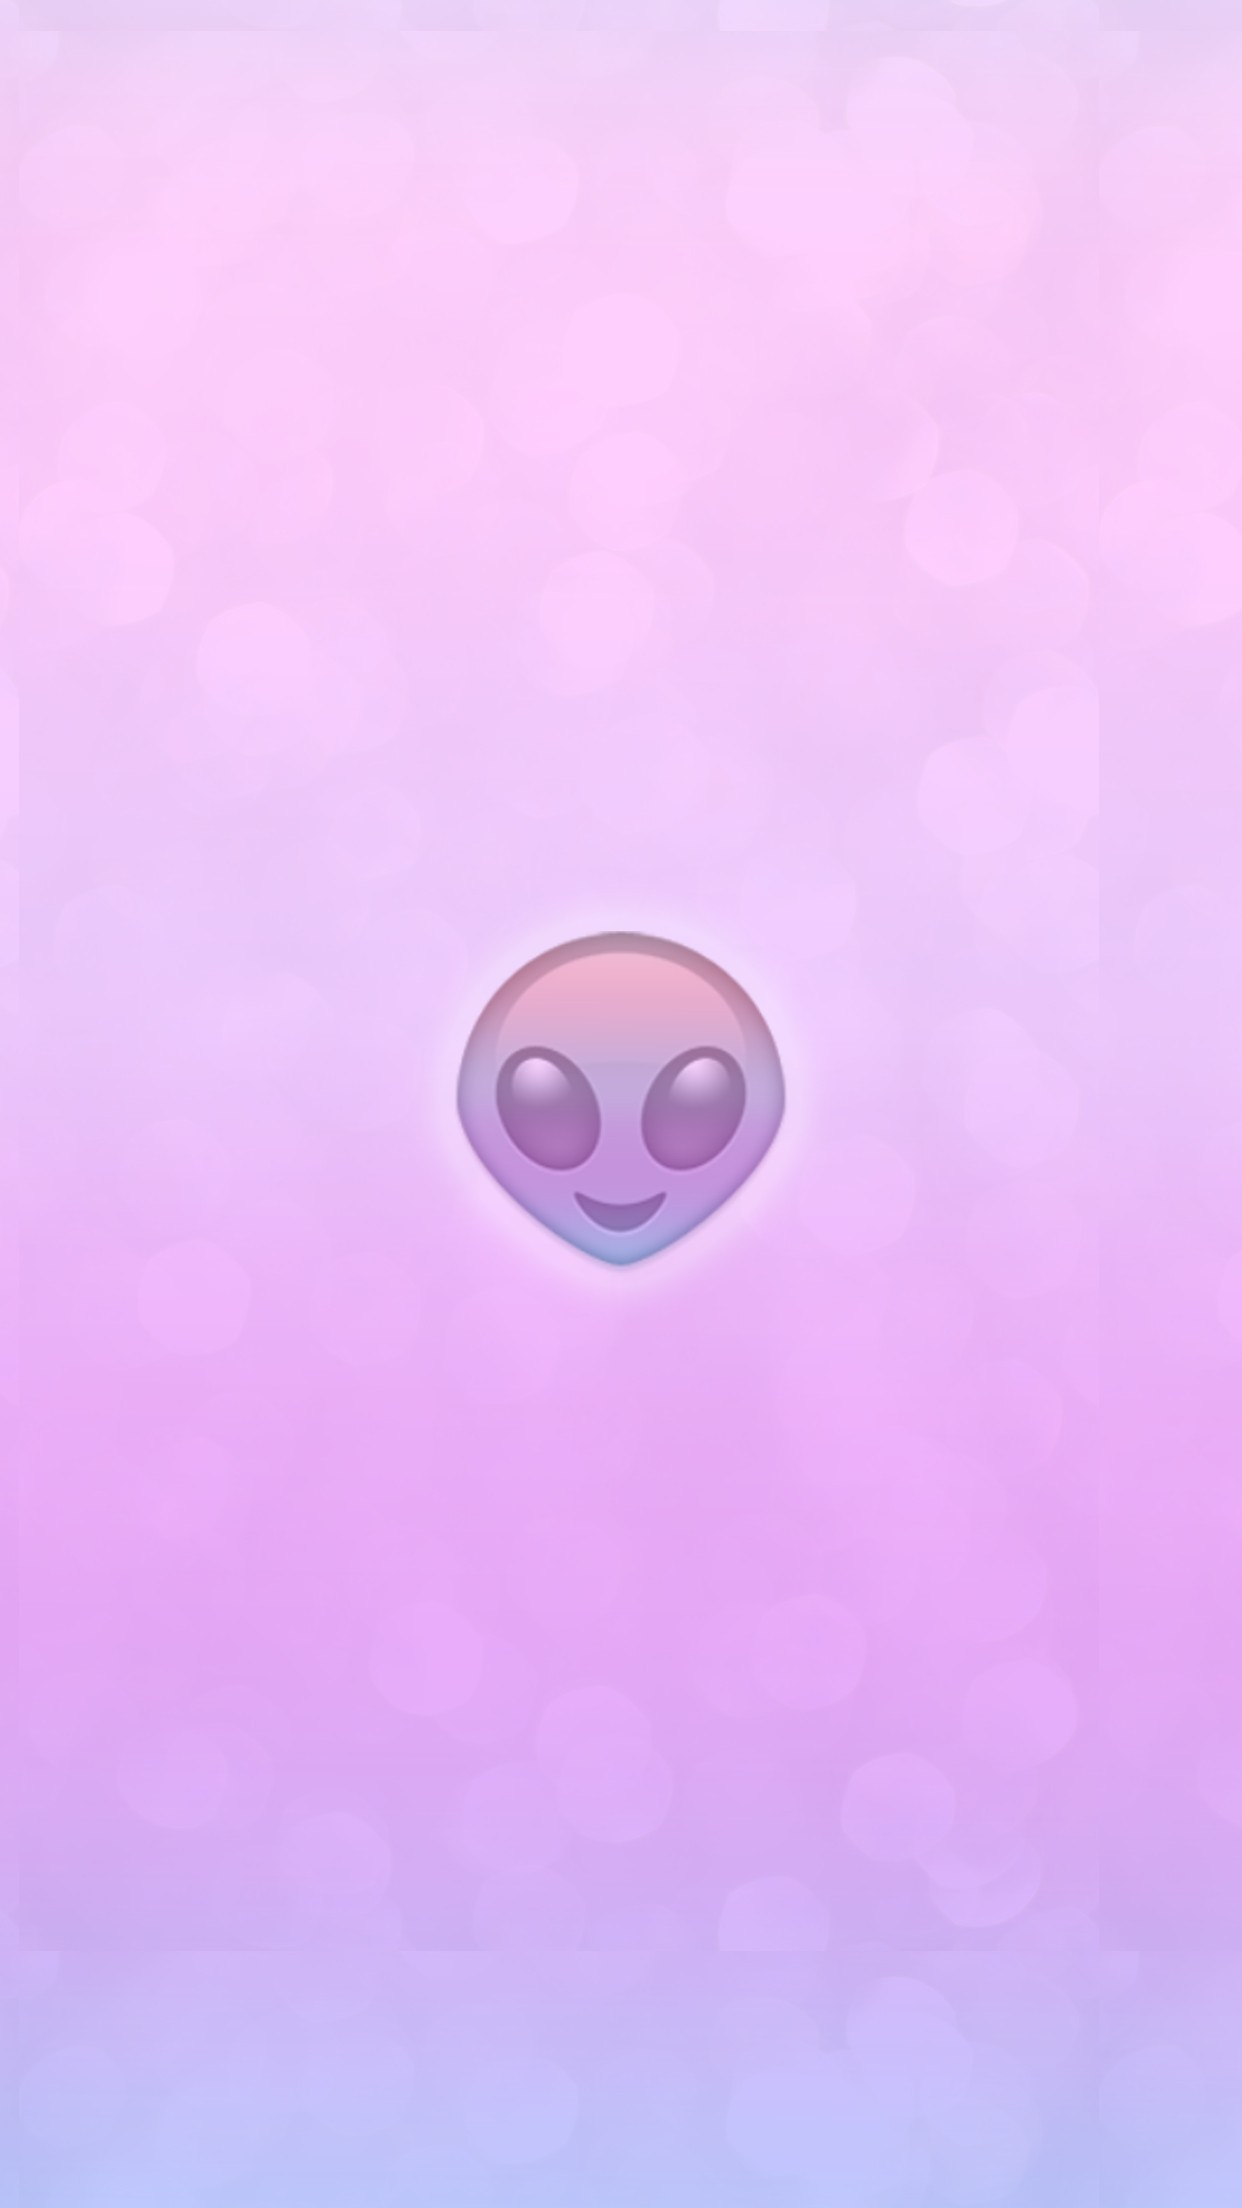 Cool Emoji Wallpapers Posted By Ethan Johnson